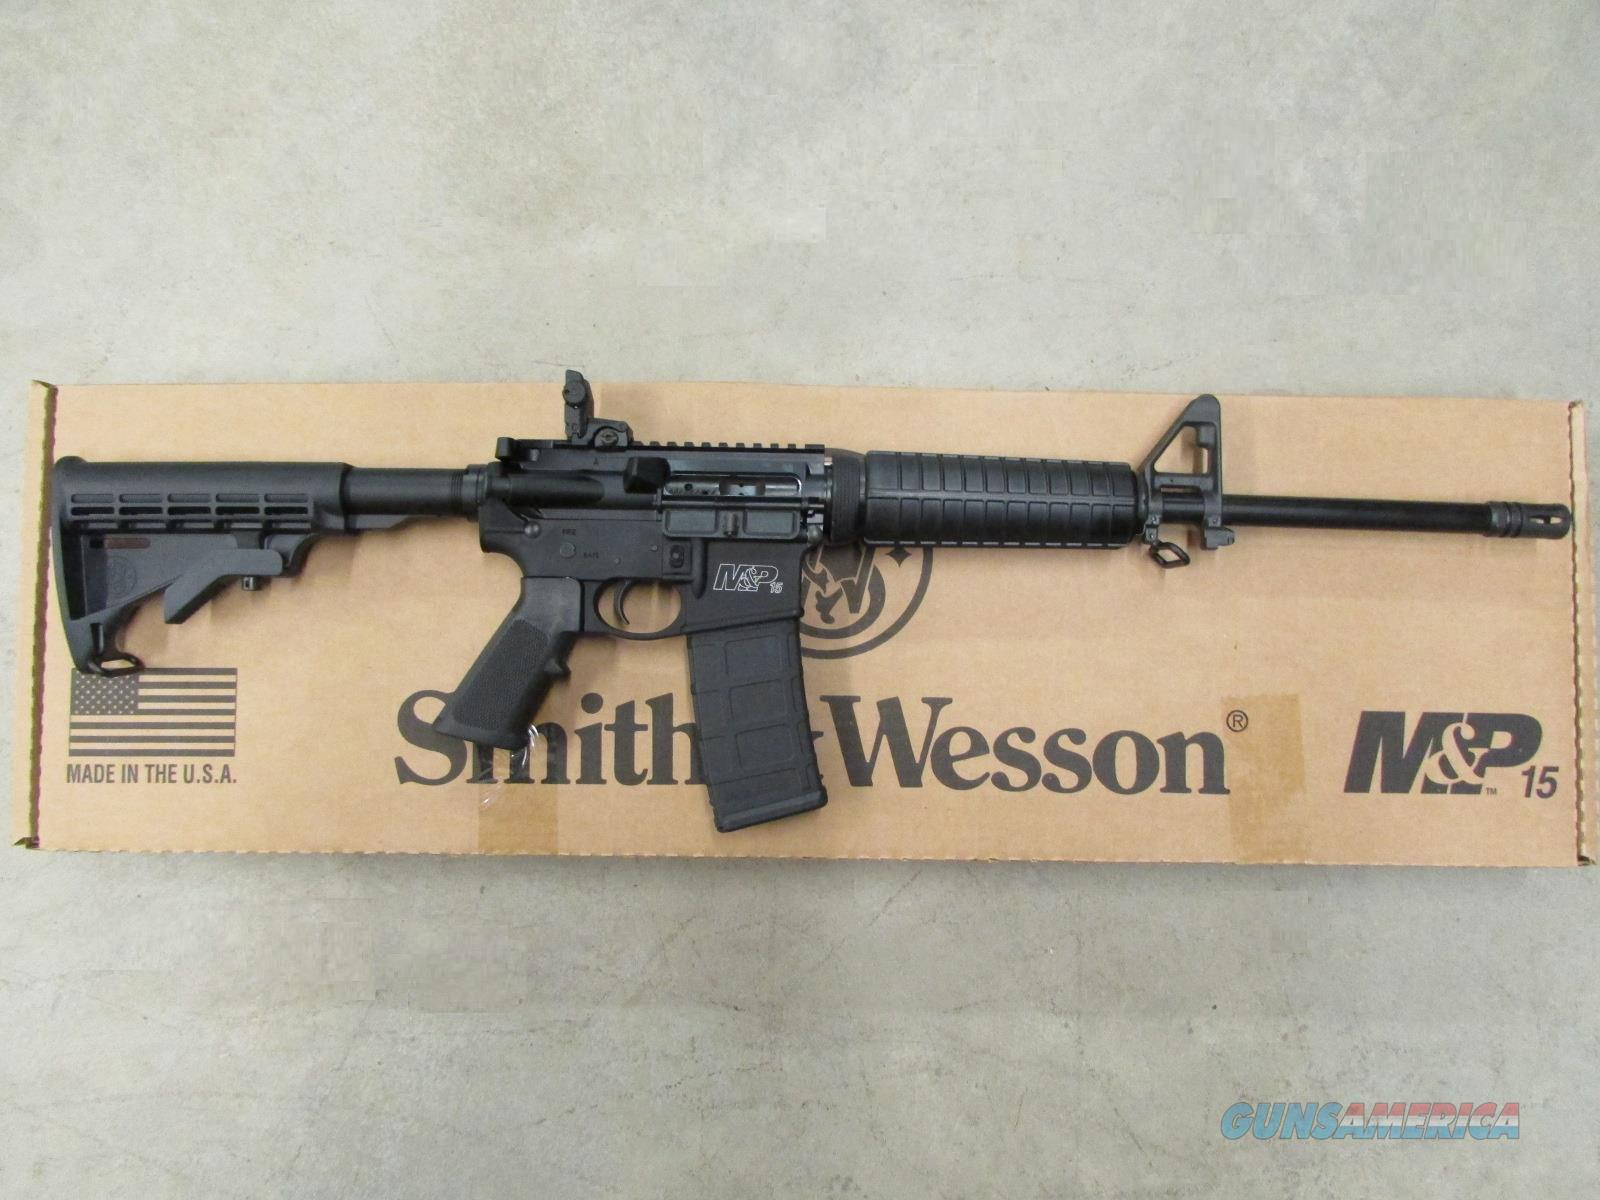 NEW!! Smith & Wesson M&15 Sport II AR-15 5.56 NATO / .223 REM 10202  Guns > Rifles > Smith & Wesson Rifles > M&P